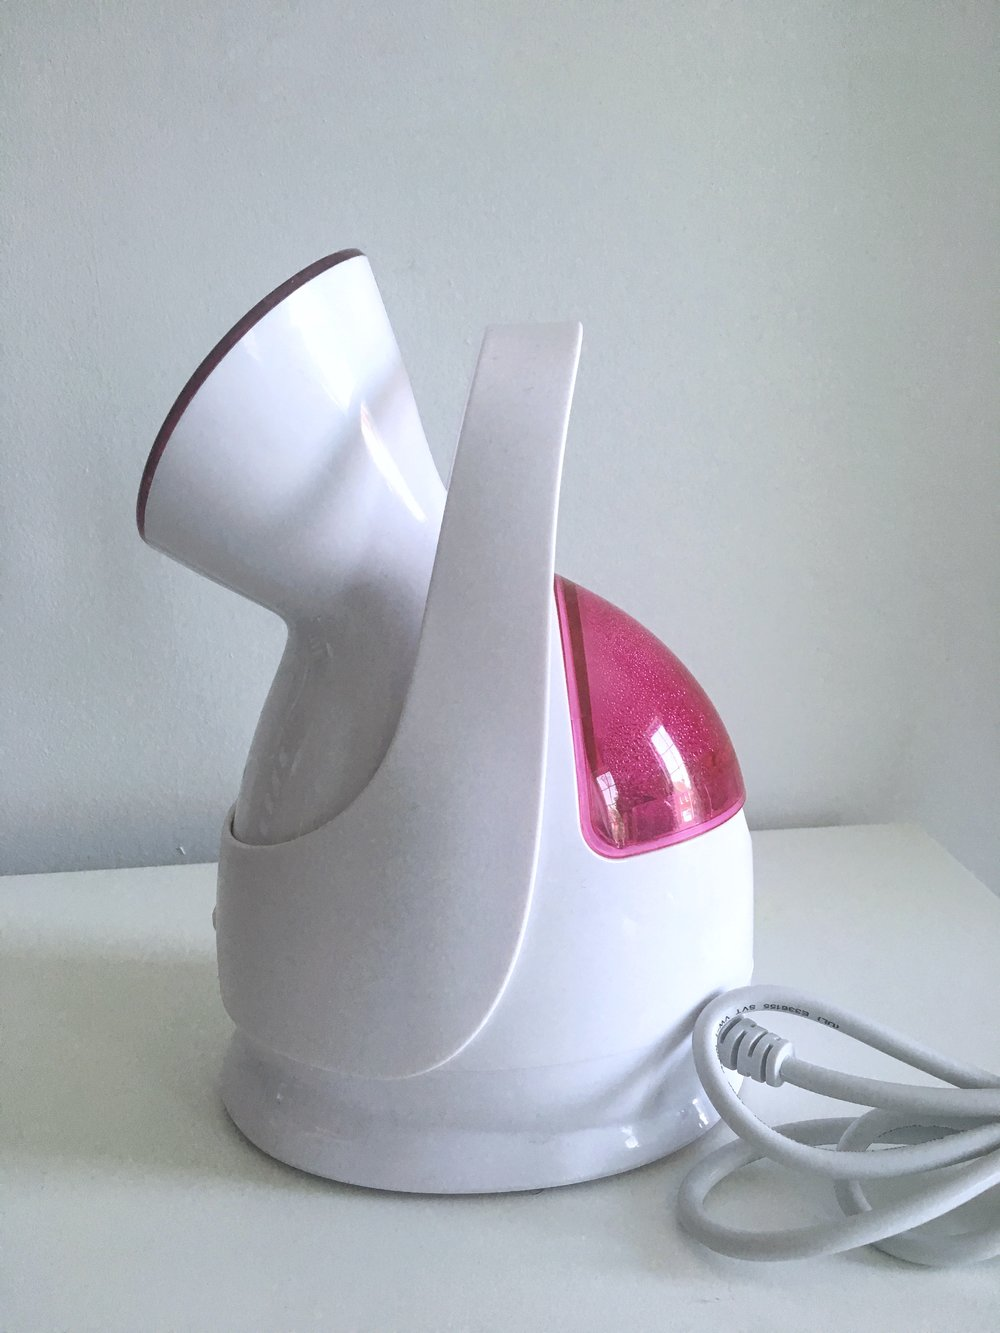 Secura Nano Iconic Facial Steamer - steams in seconds, gently exfoliates and softens skin to increase product absorption.